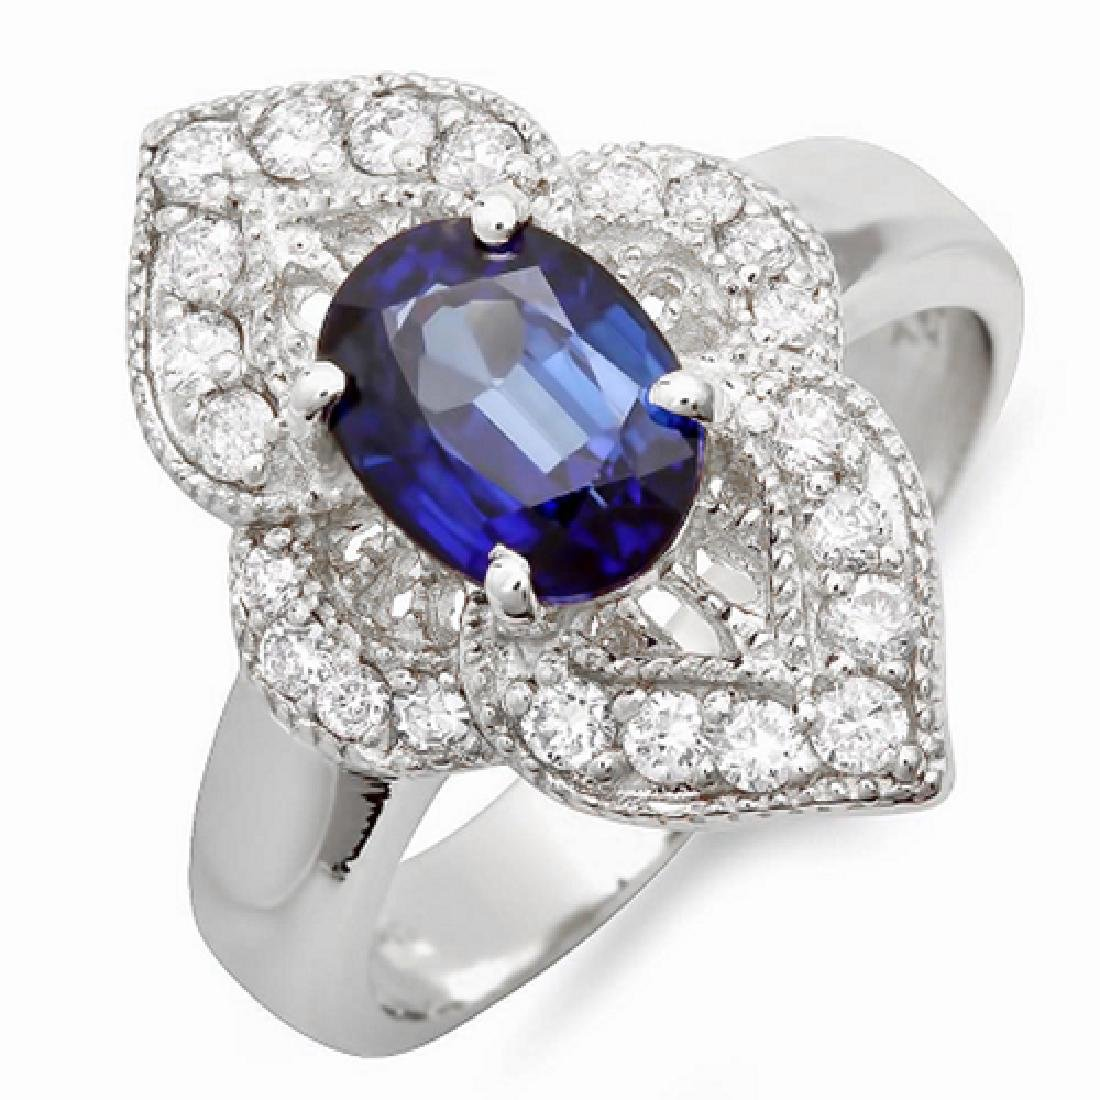 2.40 Carat Natural Sapphire 18K Solid White Gold - 2